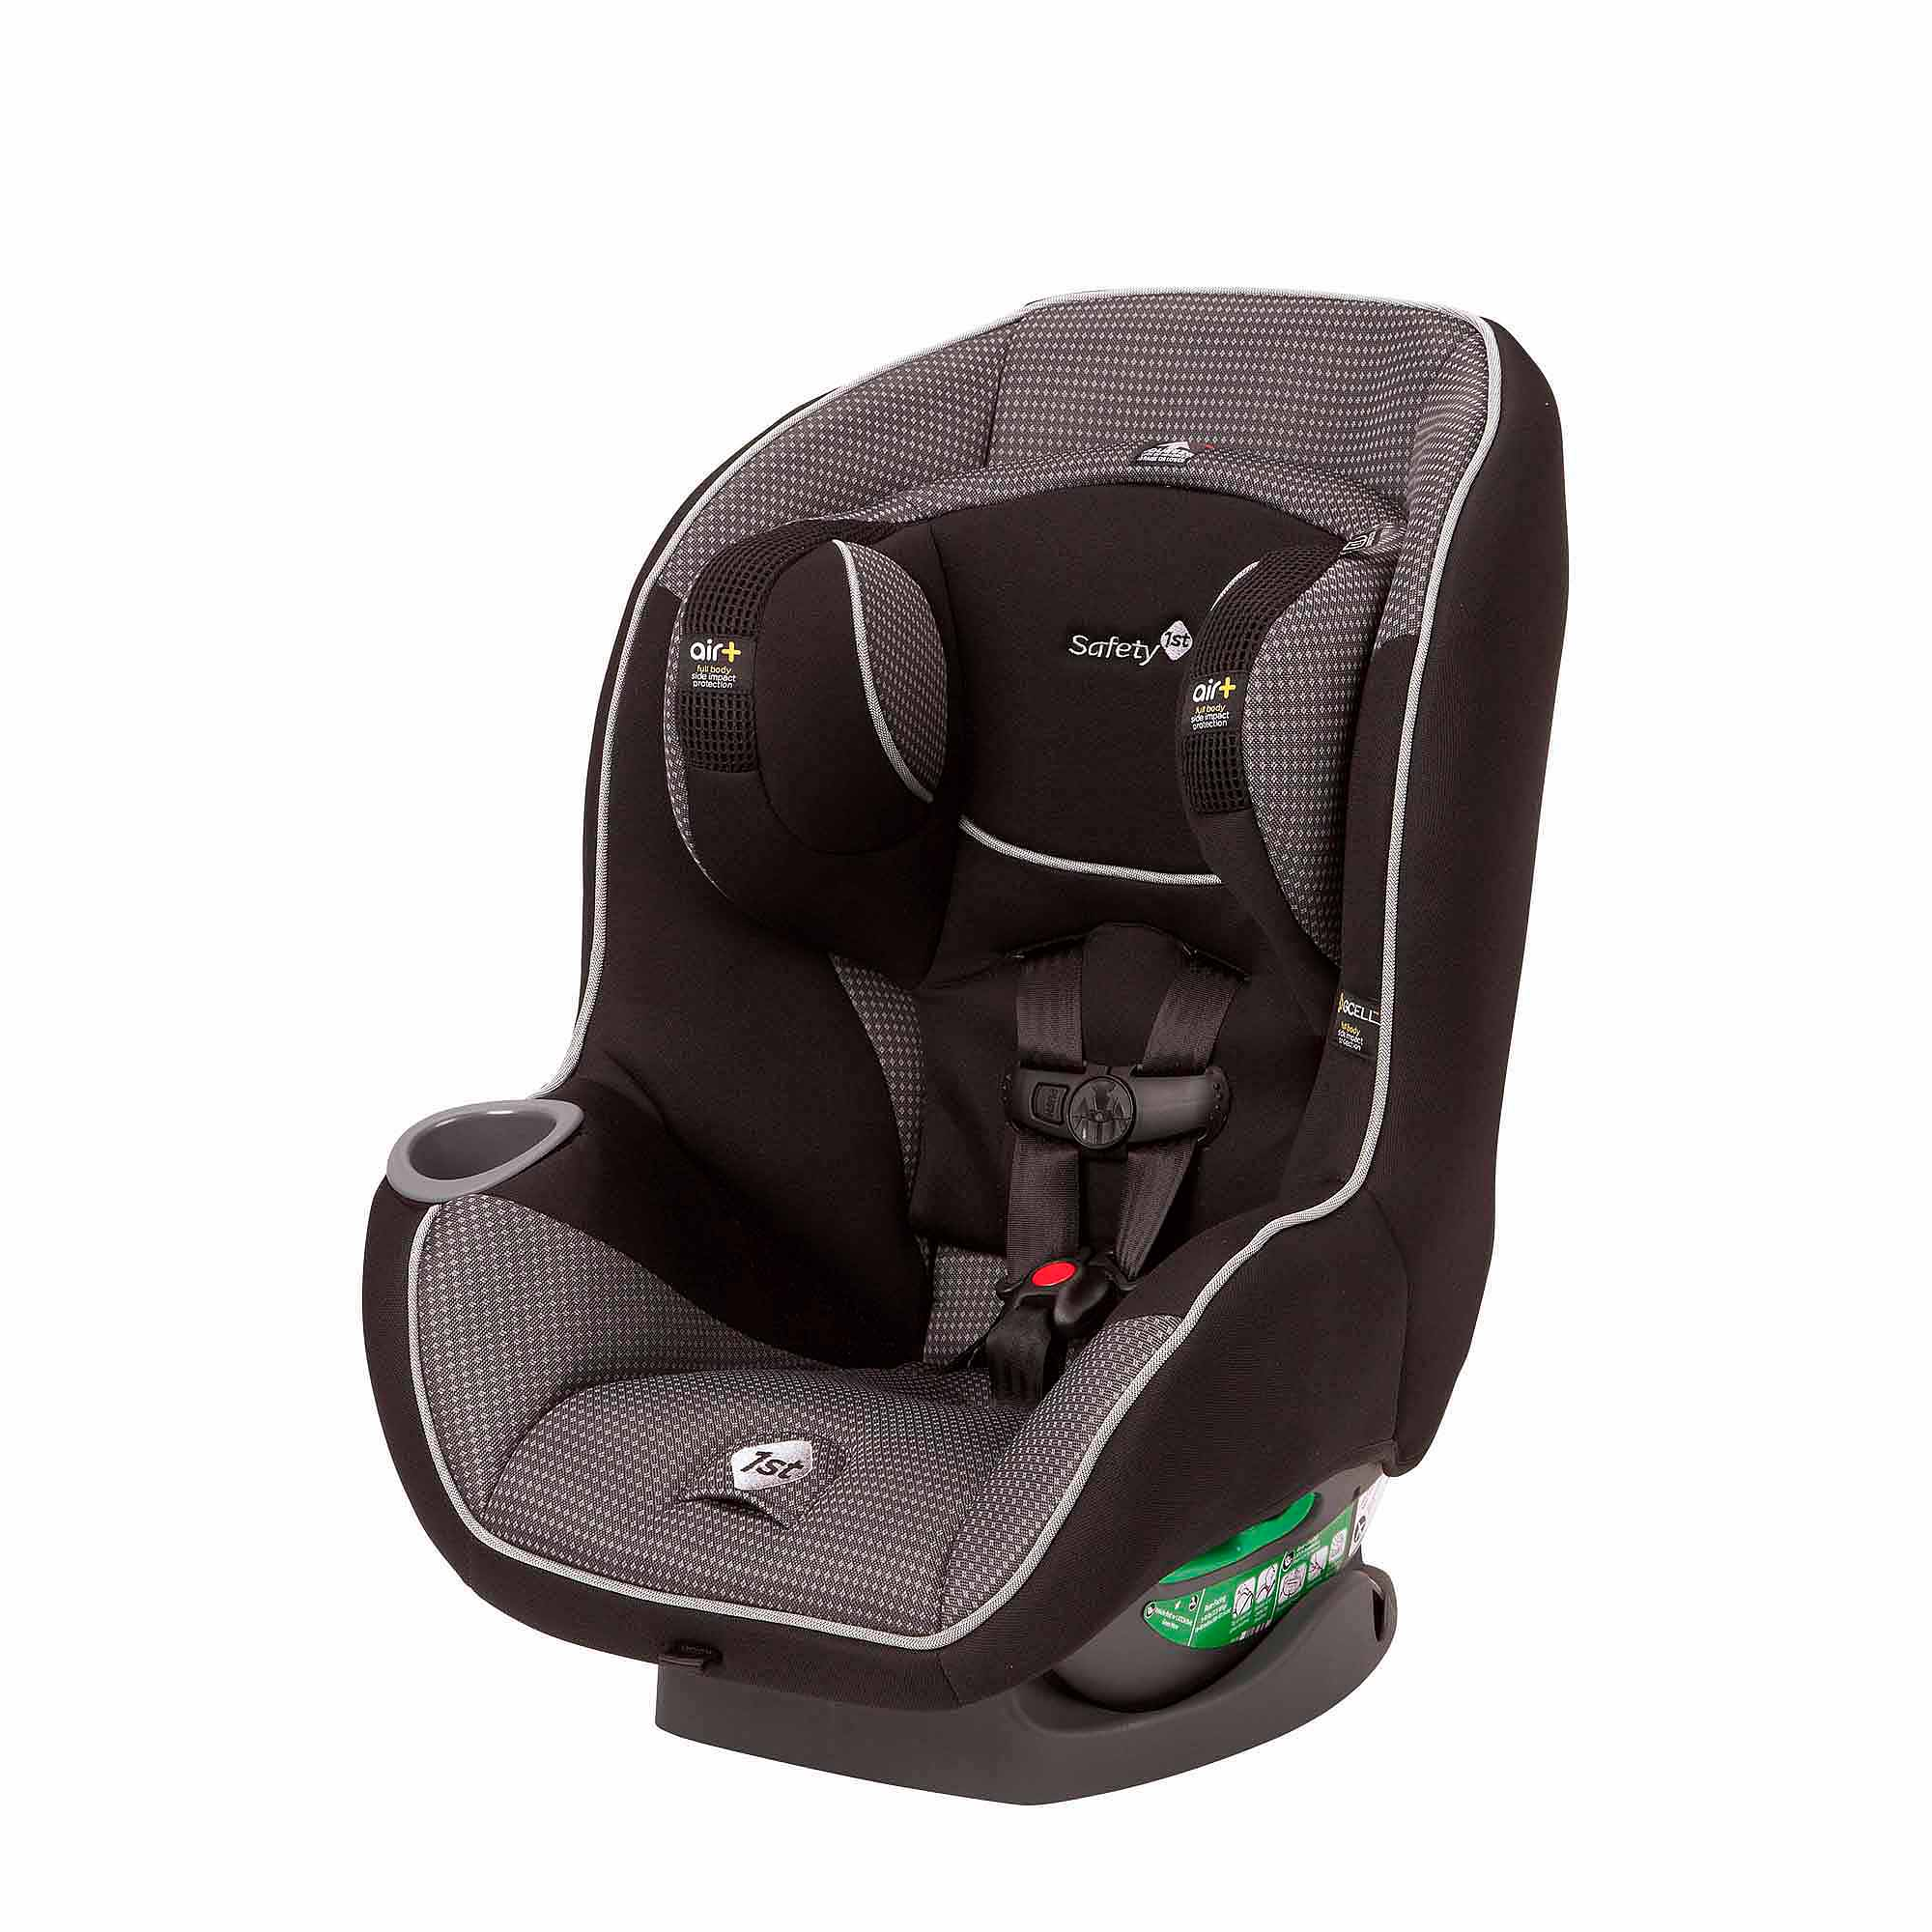 Safety 1st Advance Convertible Car Seat, SE 65 Air+, St. Germaine